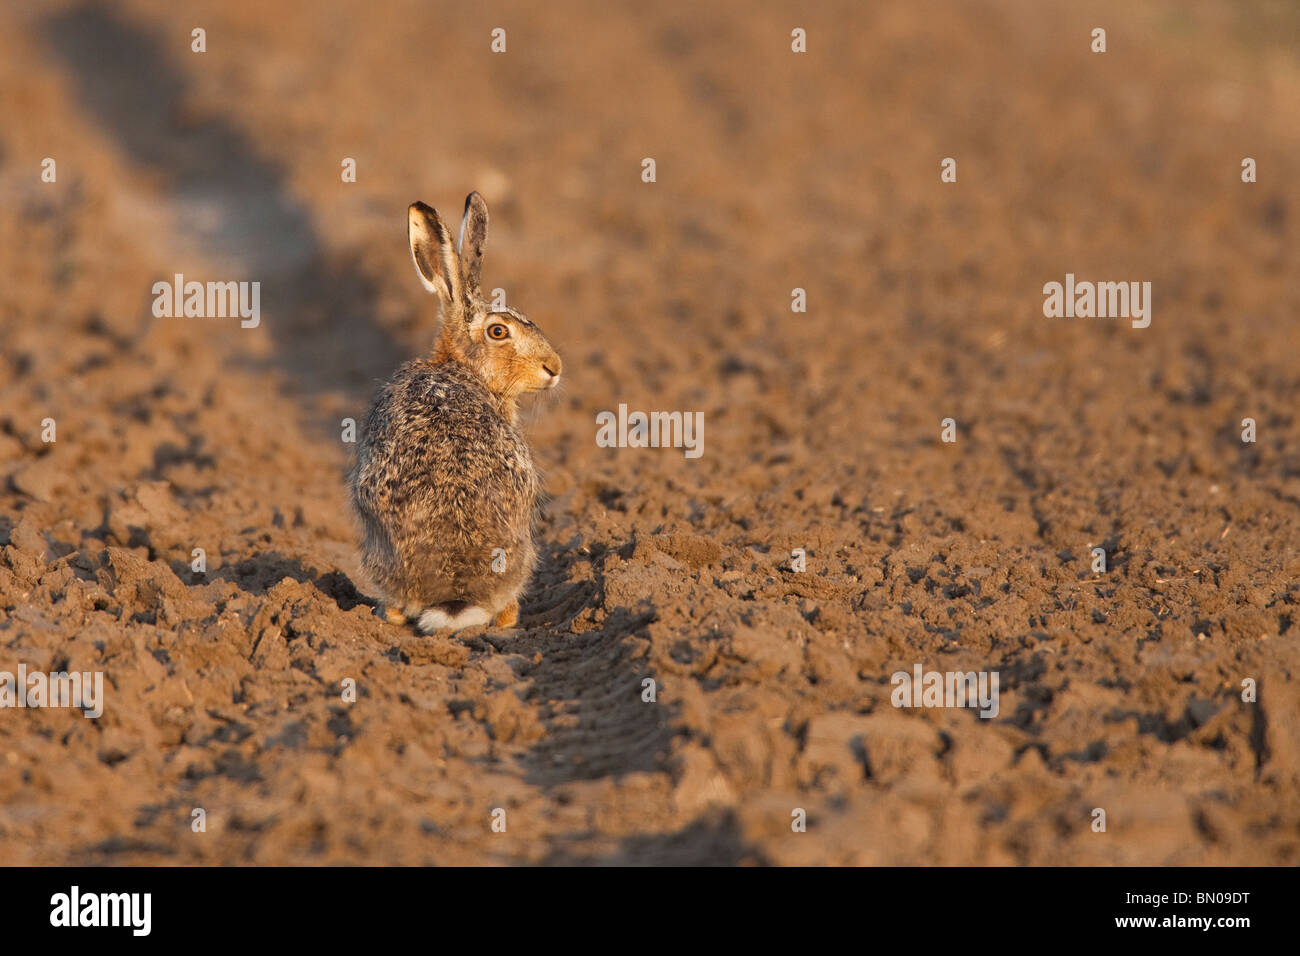 European Brown Hare (Lepus europaeus) sitting in a rut on a field. Stock Photo